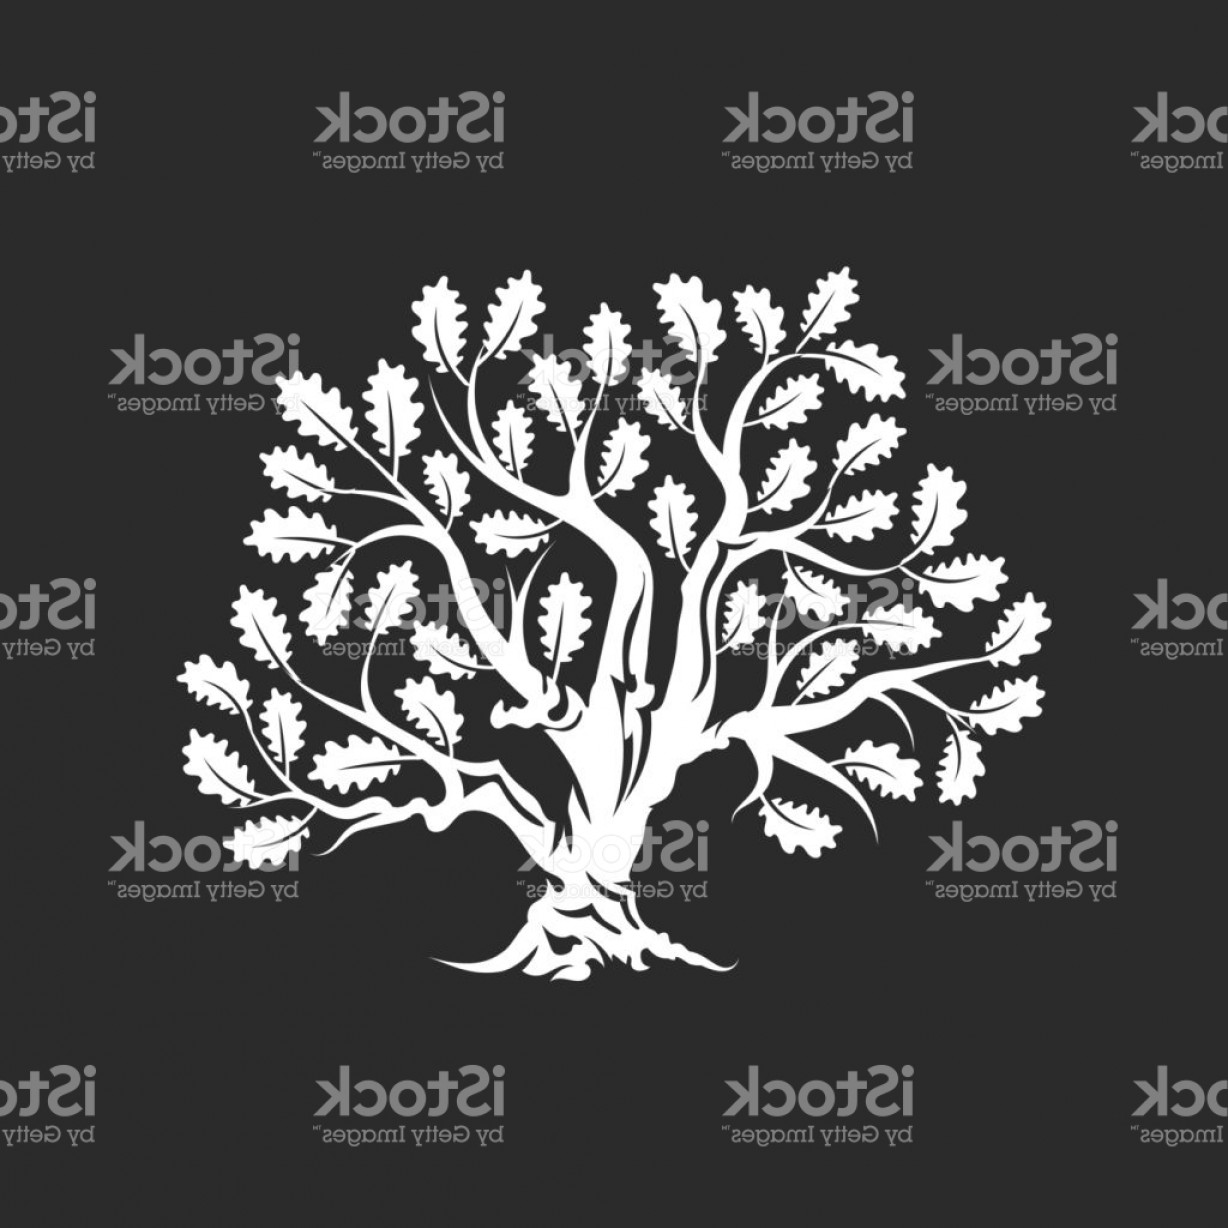 Oak Tree Silhouette Vector Graphics: Huge And Sacred Oak Tree Silhouette Icon Badge Isolated On Dark Background Gm